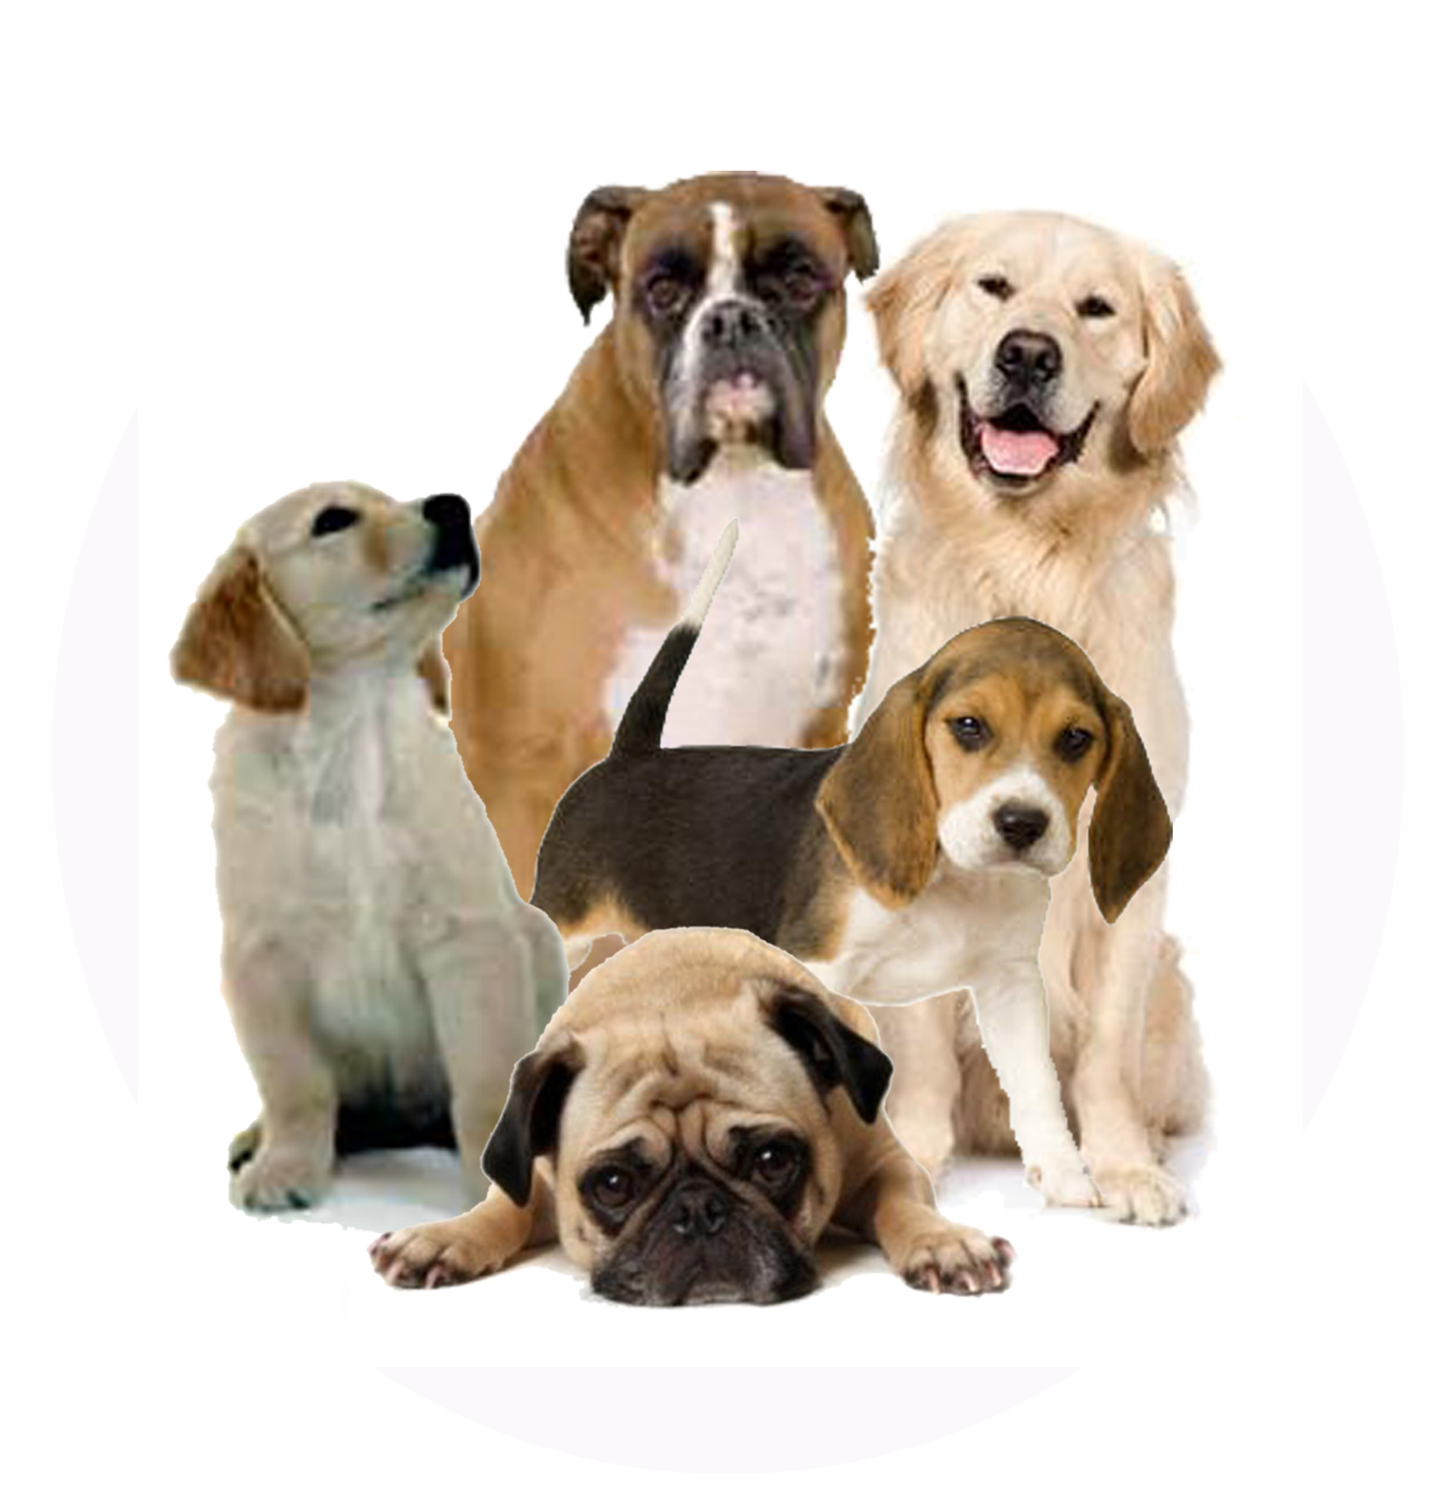 Dog transparent pictures free. Dogs png clipart freeuse stock